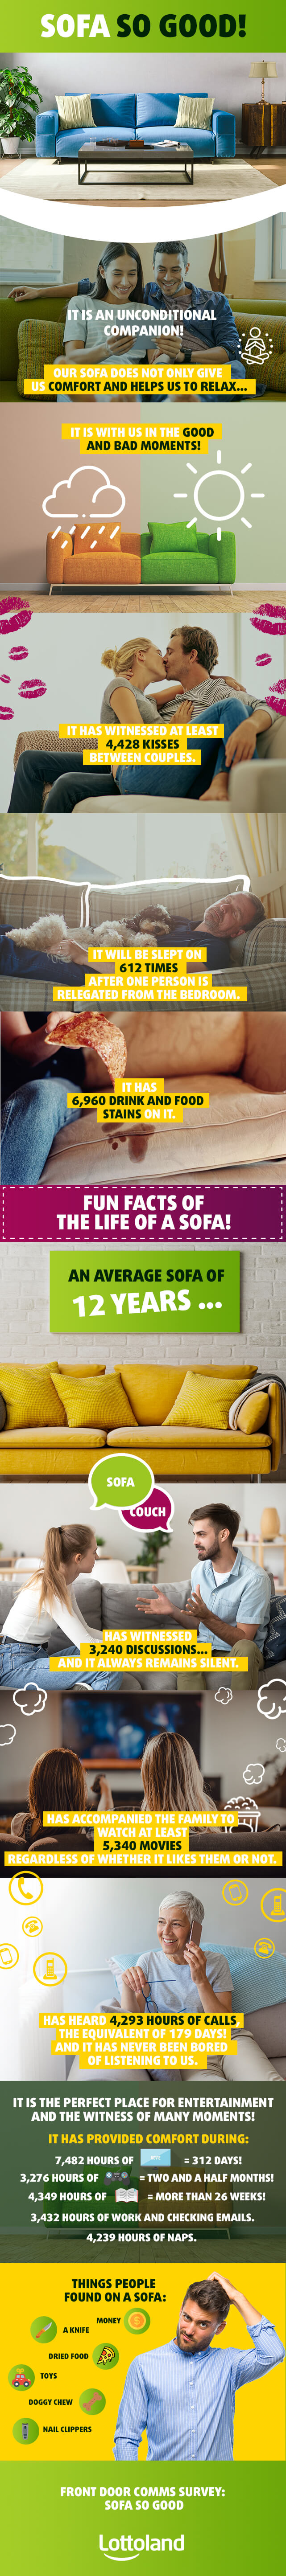 Infographic with facts and figures on the life of a sofa